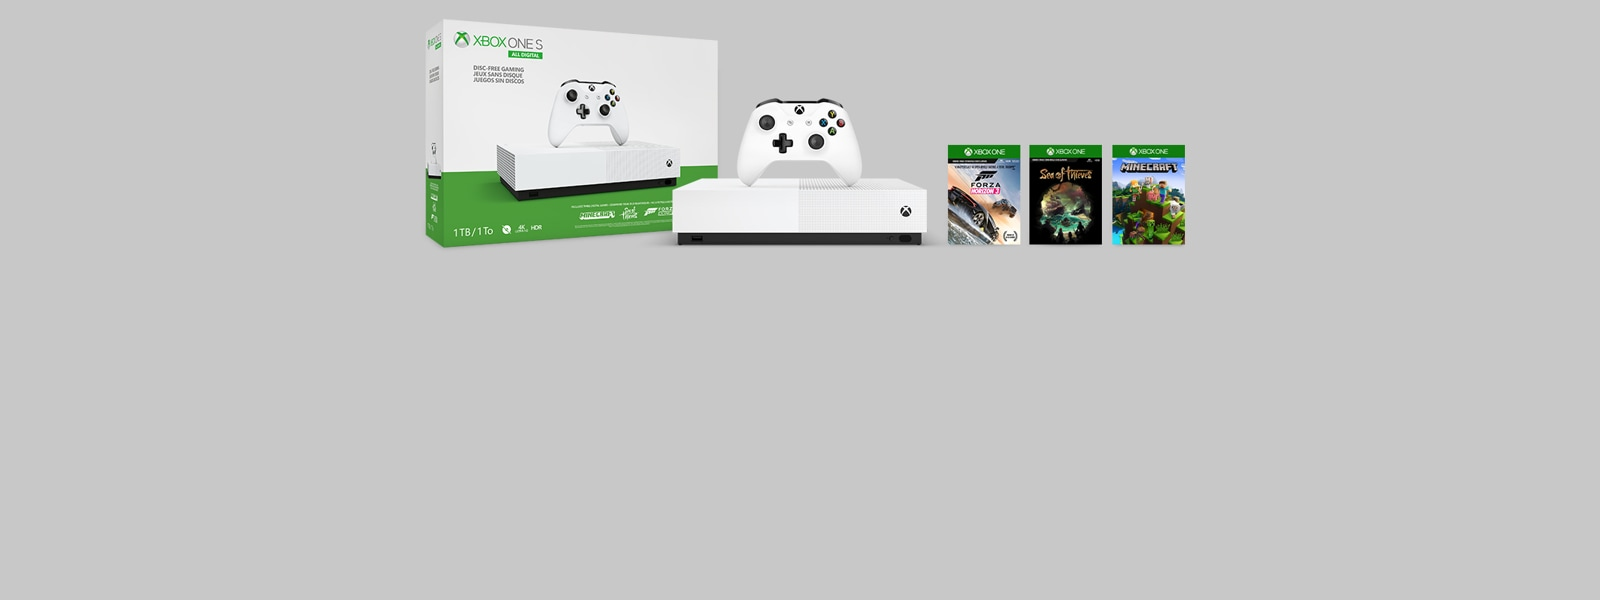 Nueva consola Xbox One S All-Digital Edition que muestra títulos de juegos precargados: Forza Horizon 3, Sea of Thieves, Minecraft